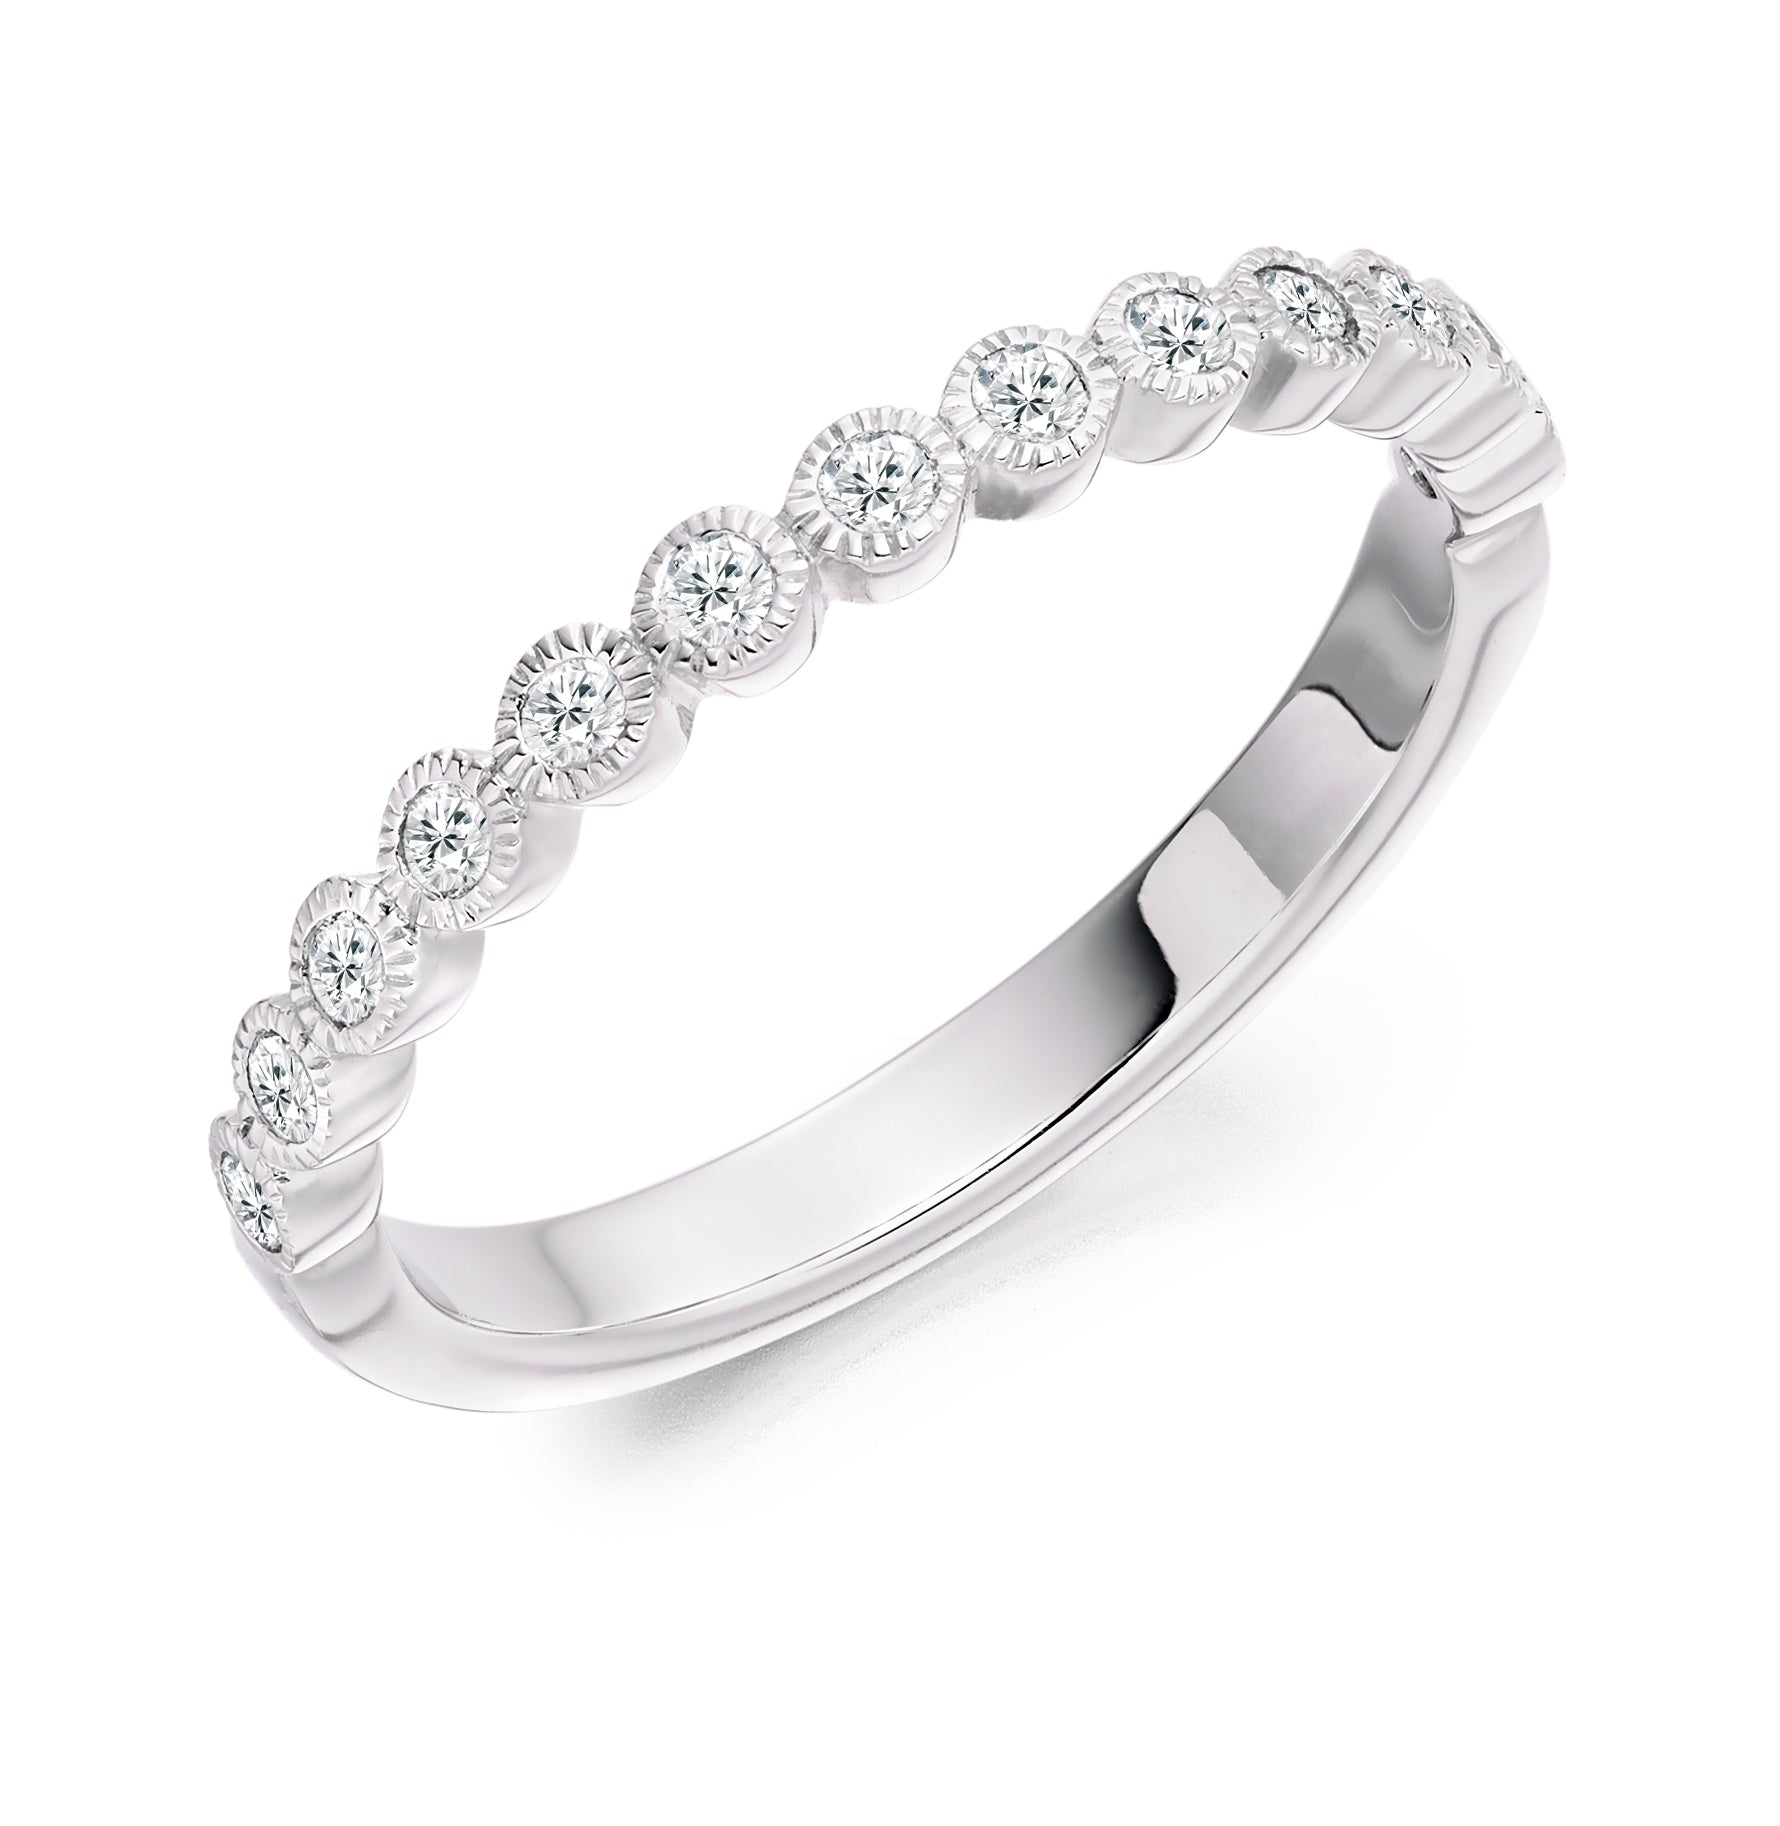 0.25ct Round Brilliant Cut Diamond Rubover Set Eternity Ring - (Home Try-On)